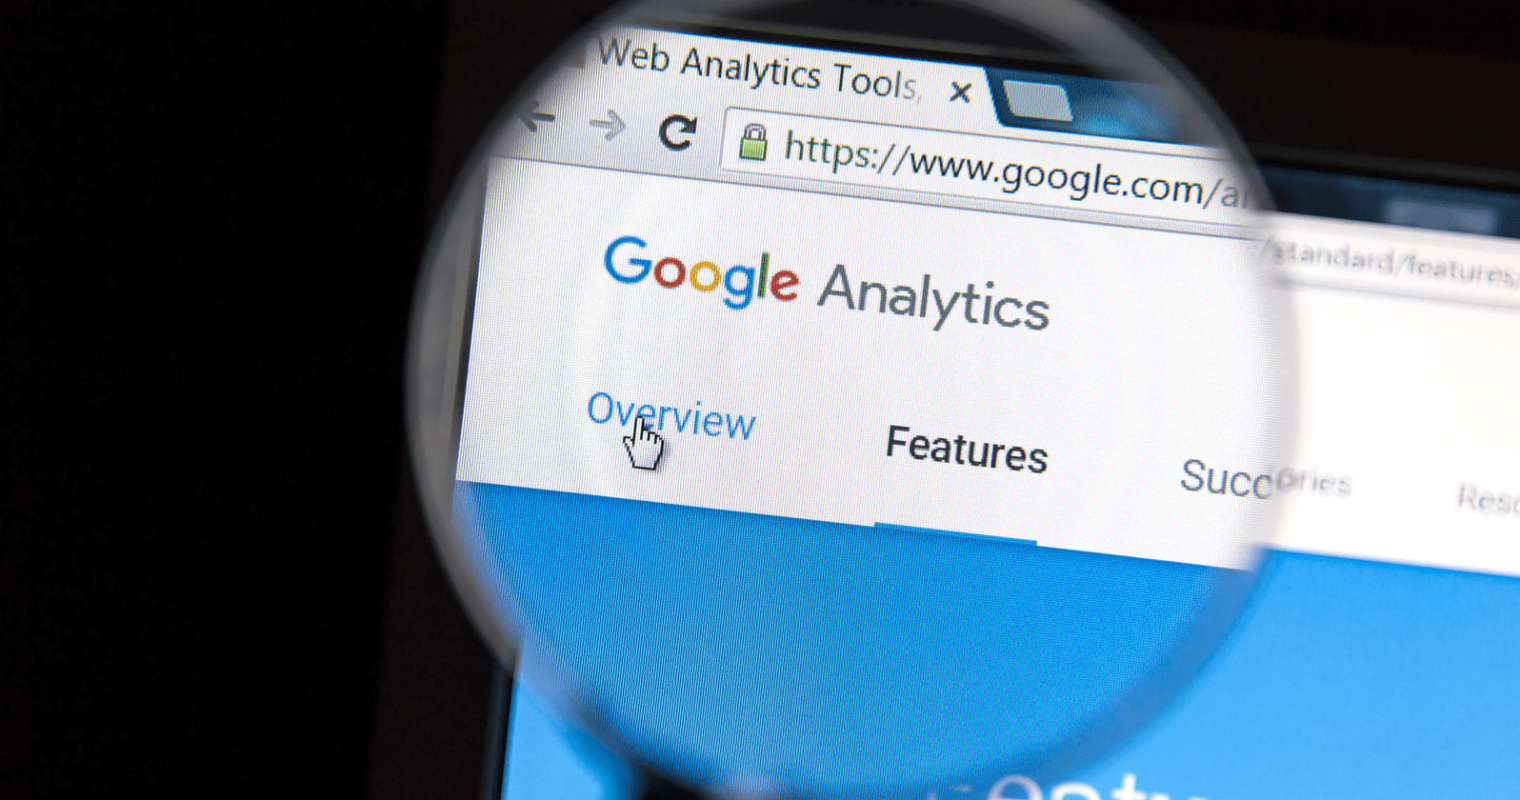 Google Images Data Will Soon be Displayed in Google Analytics